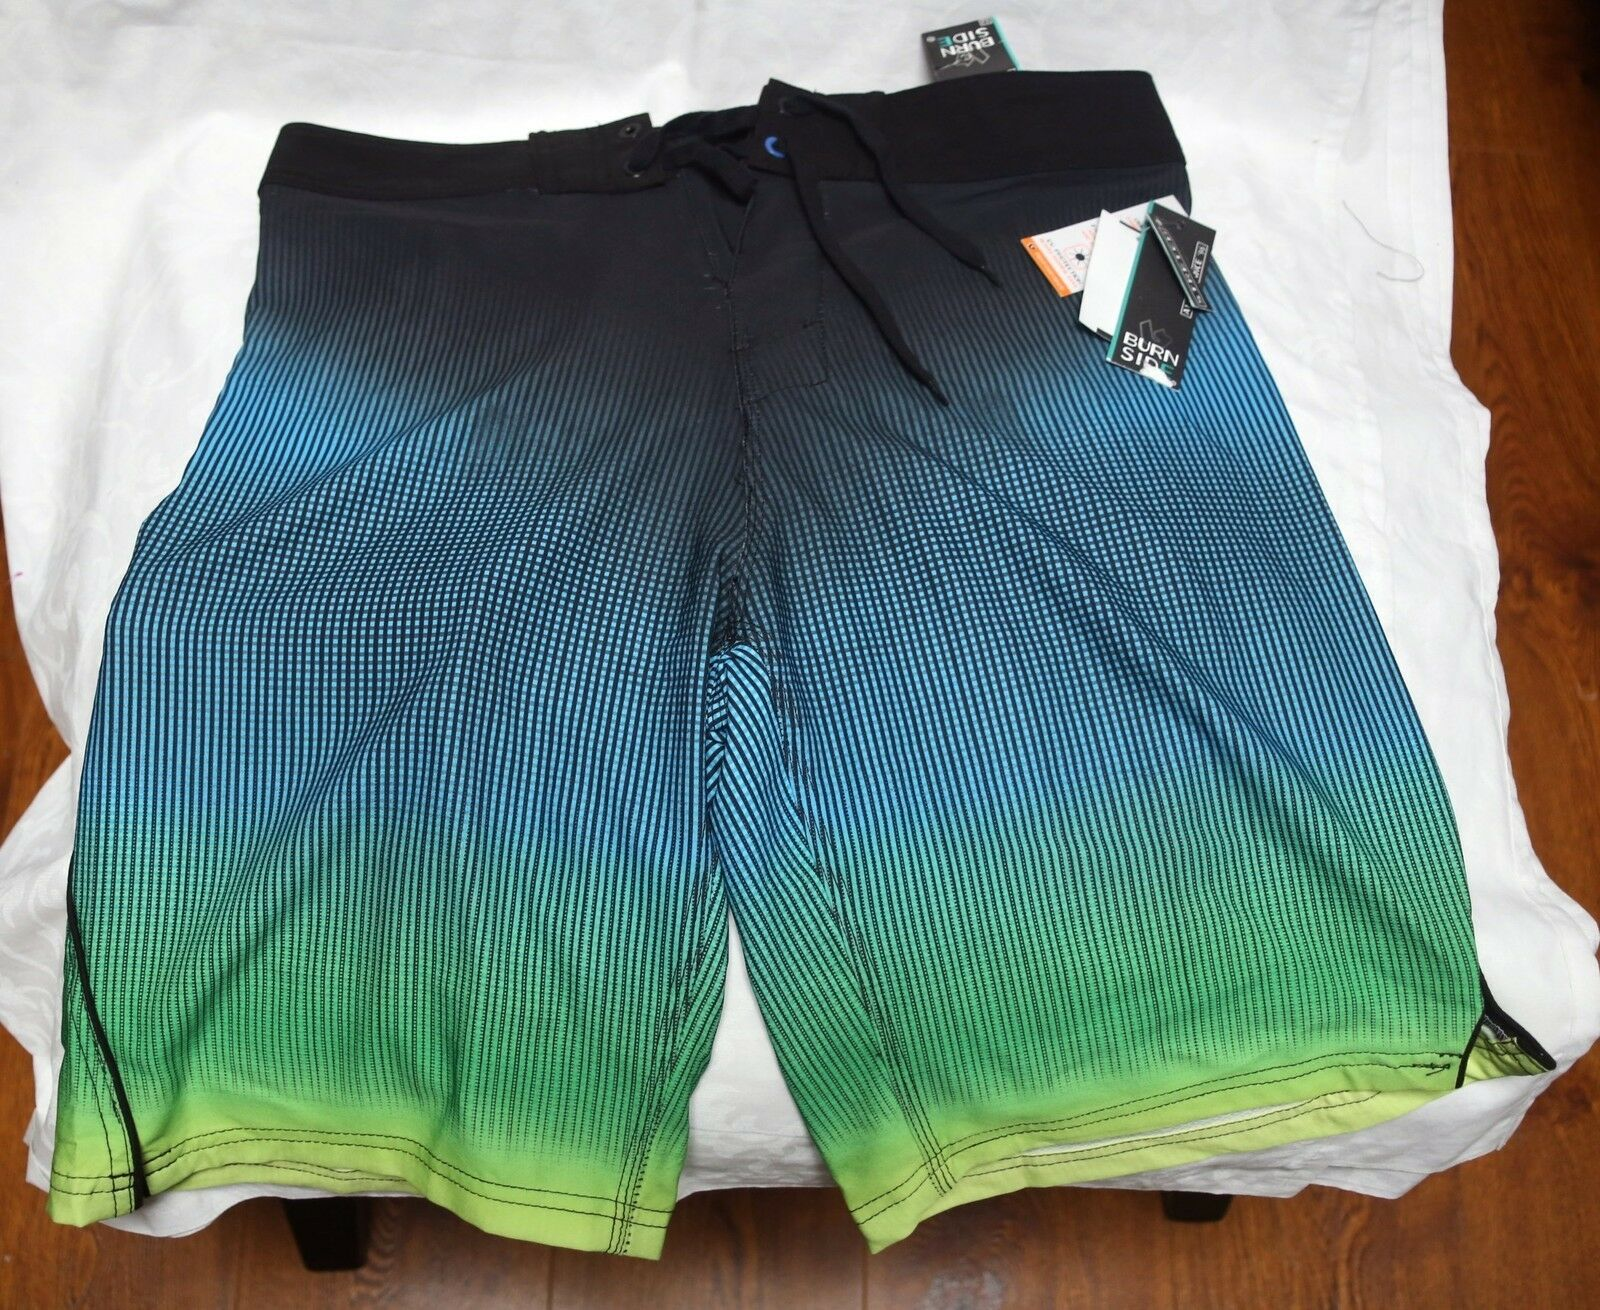 NWT Burnside board shorts size 32, colorful